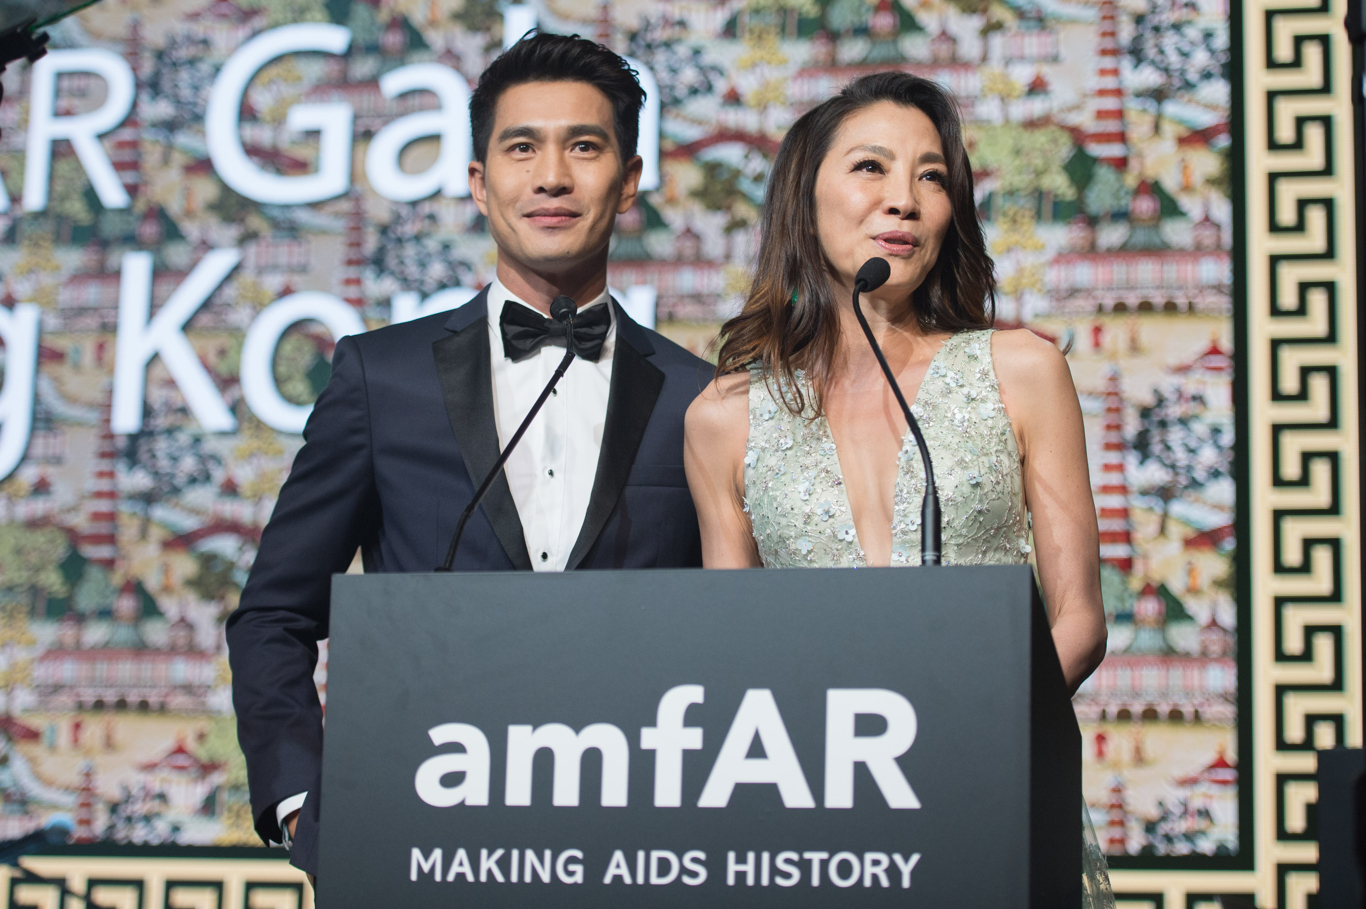 Inside the AmfAR Gala in Hong Kong 2019